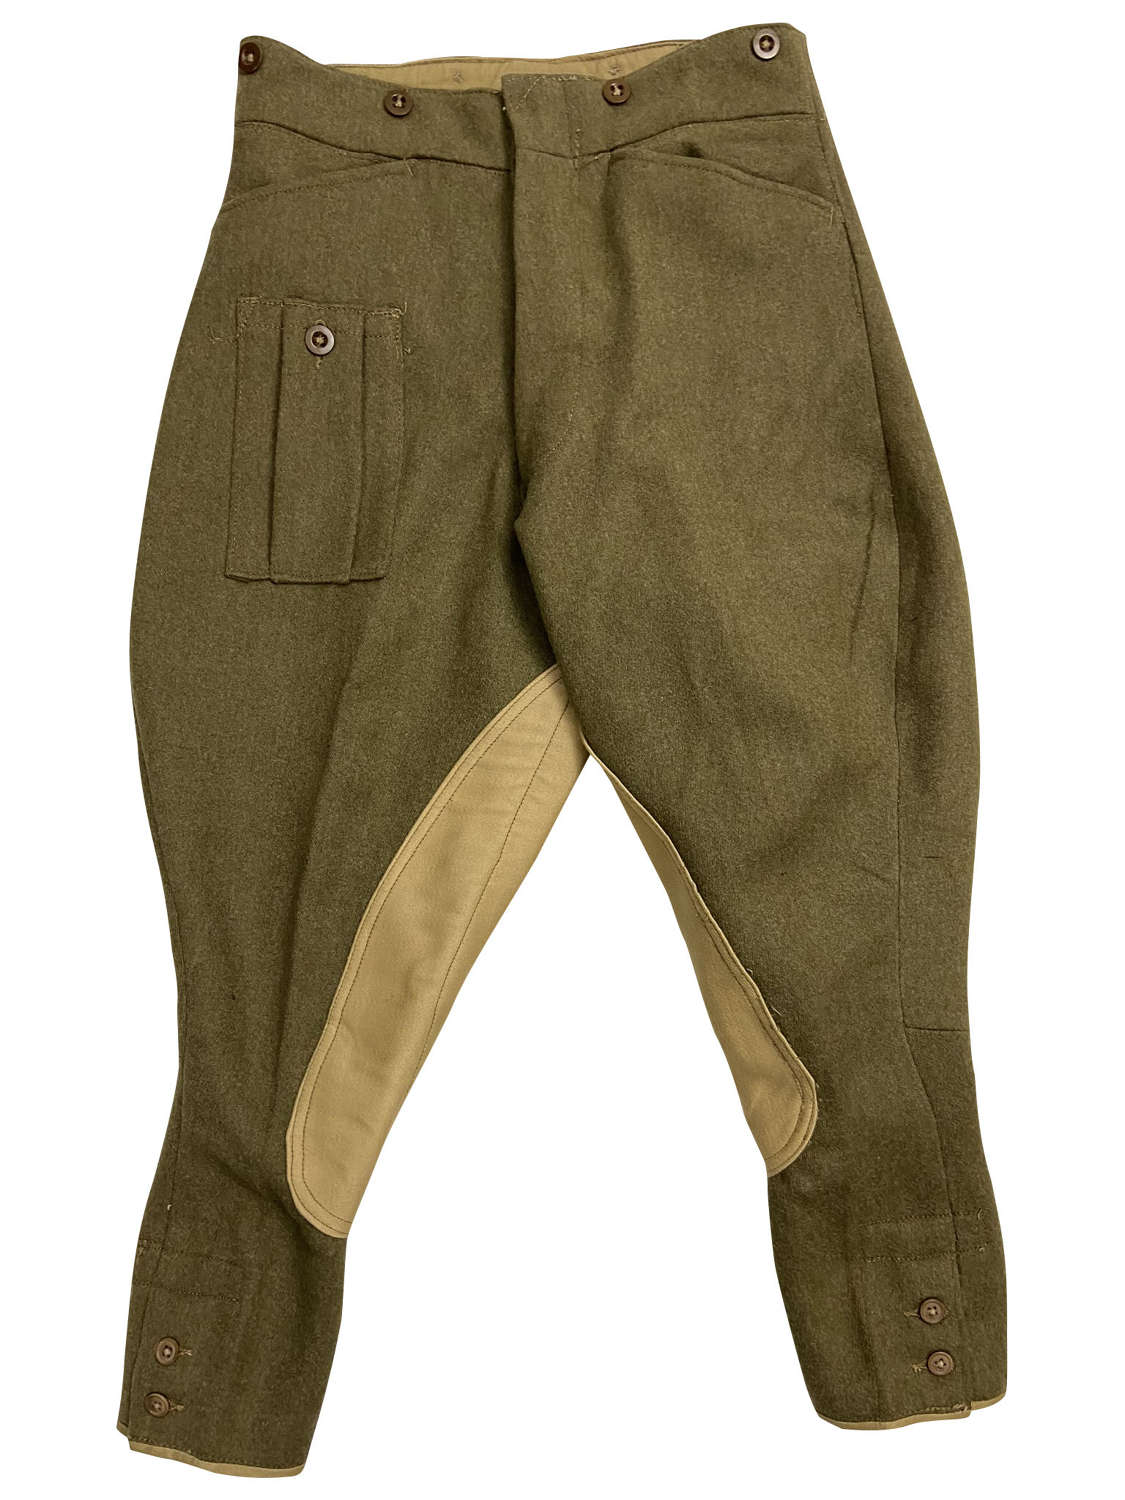 Original 1944 Dated British Army Dispatch Riders Breeches - Size 3